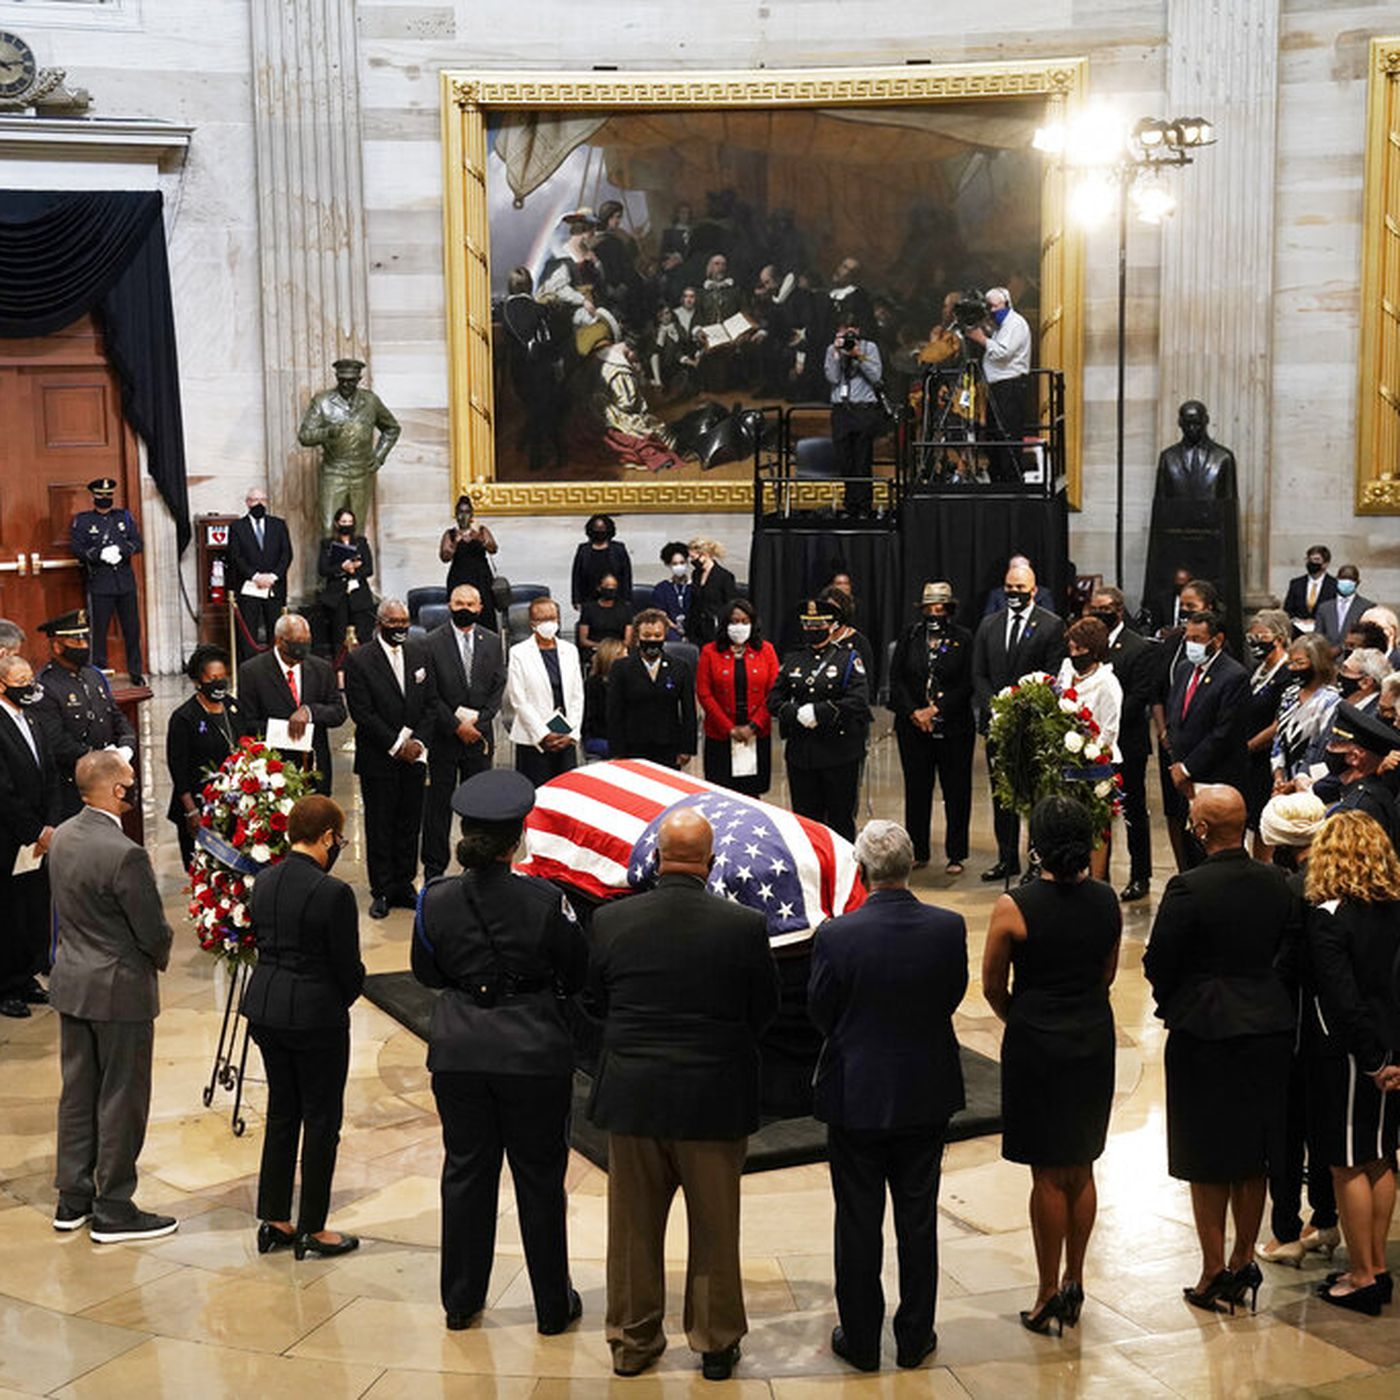 John Lewis Memorial Civil Rights Icon Honored In Capitol Rotunda Chicago Sun Times